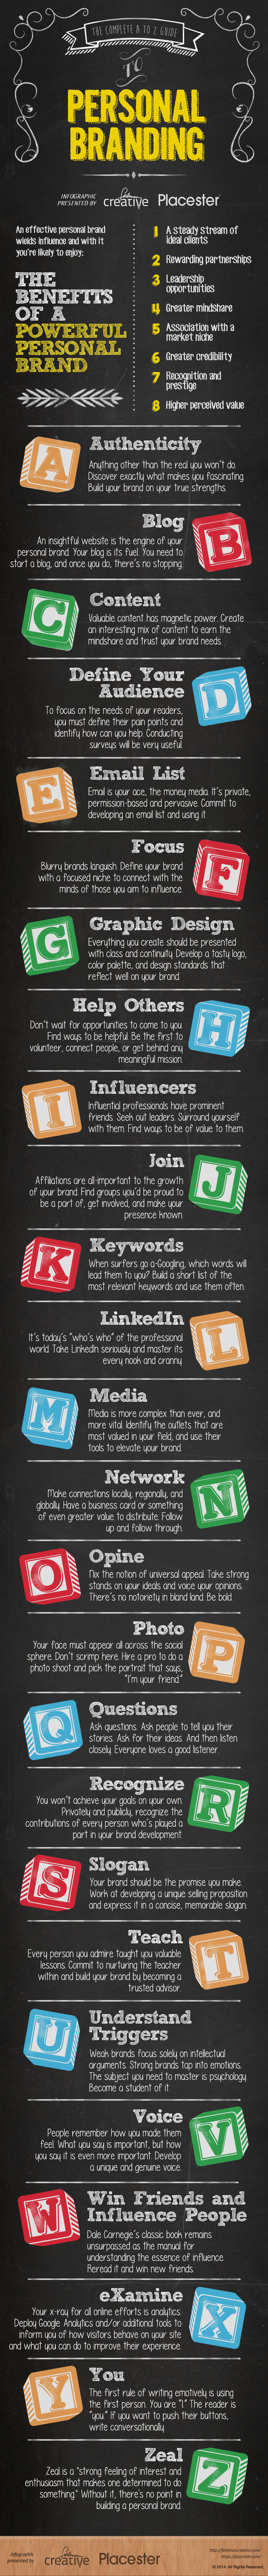 Personal Branding: The Complete A to Z Guide to Doing It Right [Infographic]